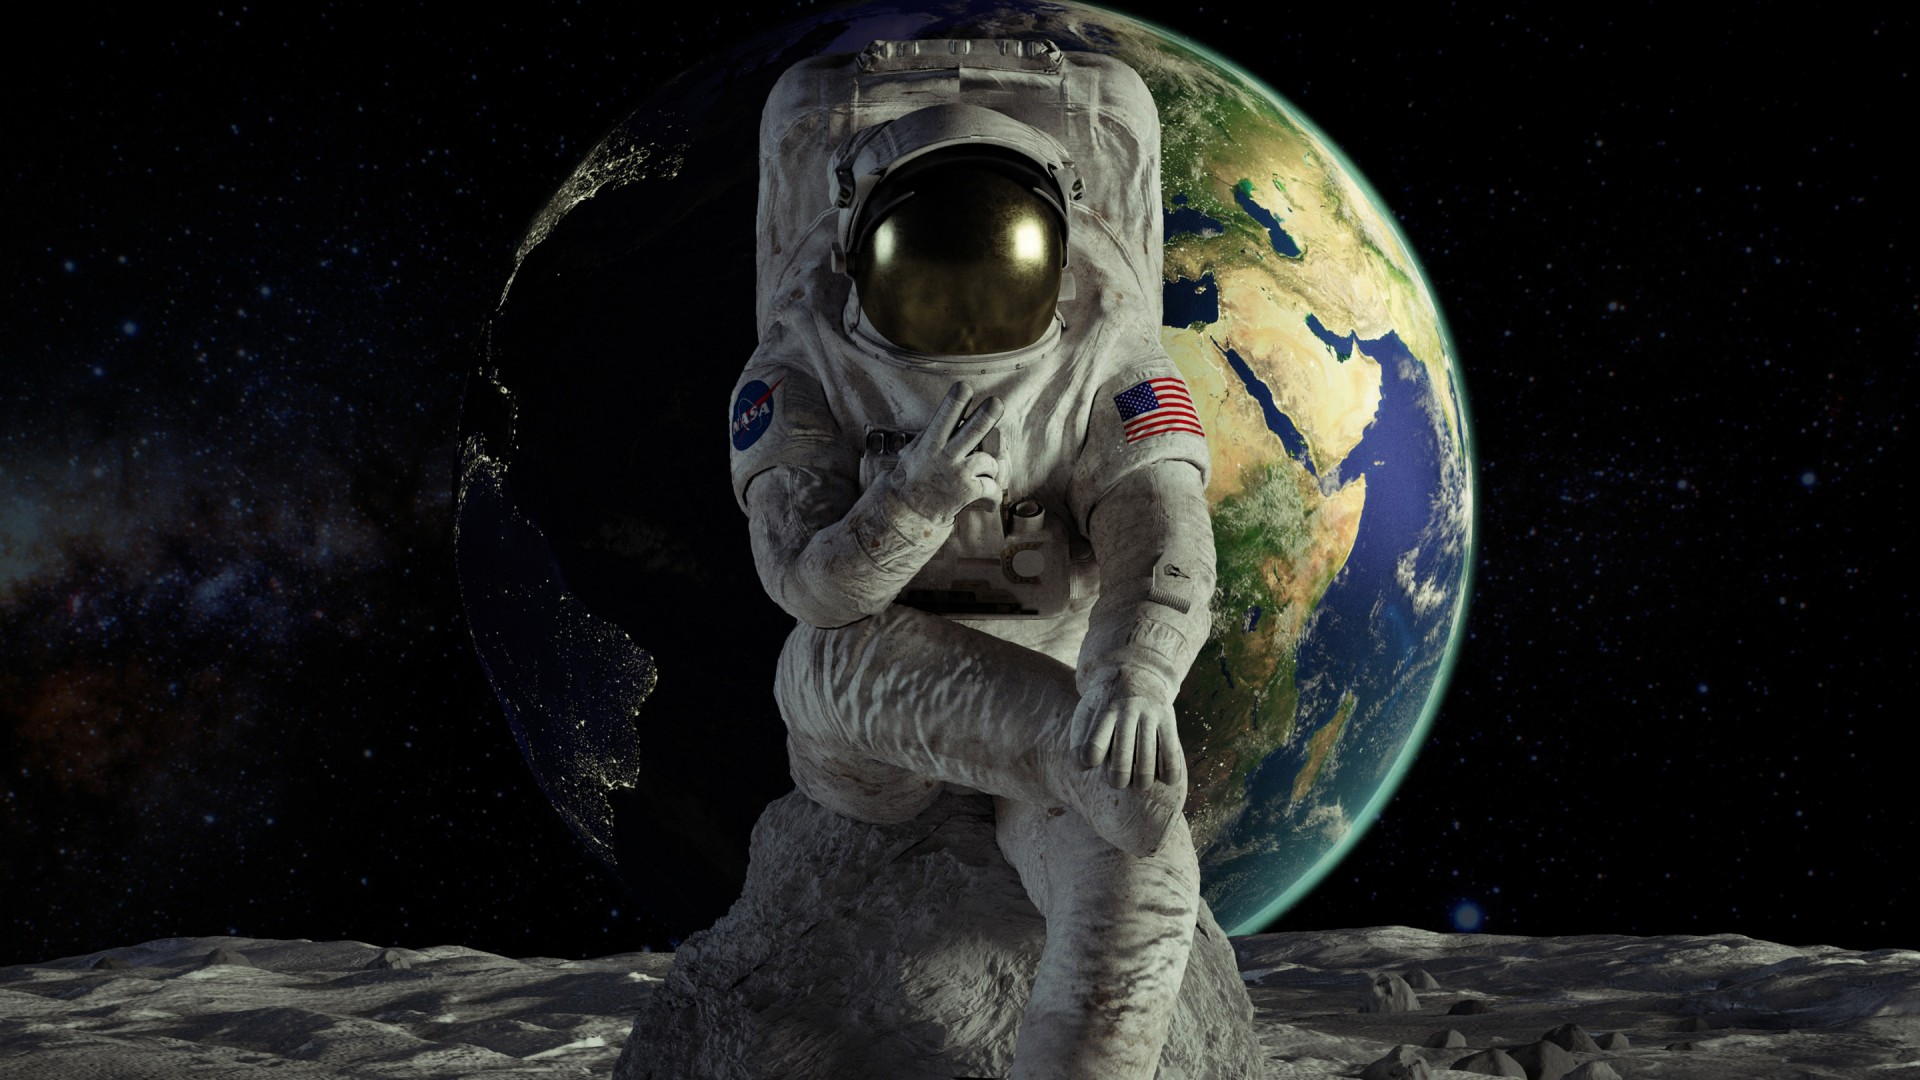 3d Cars Wallpapers For Windows 7 Astronaut Wallpapers Hd Wallpapers Id 27236